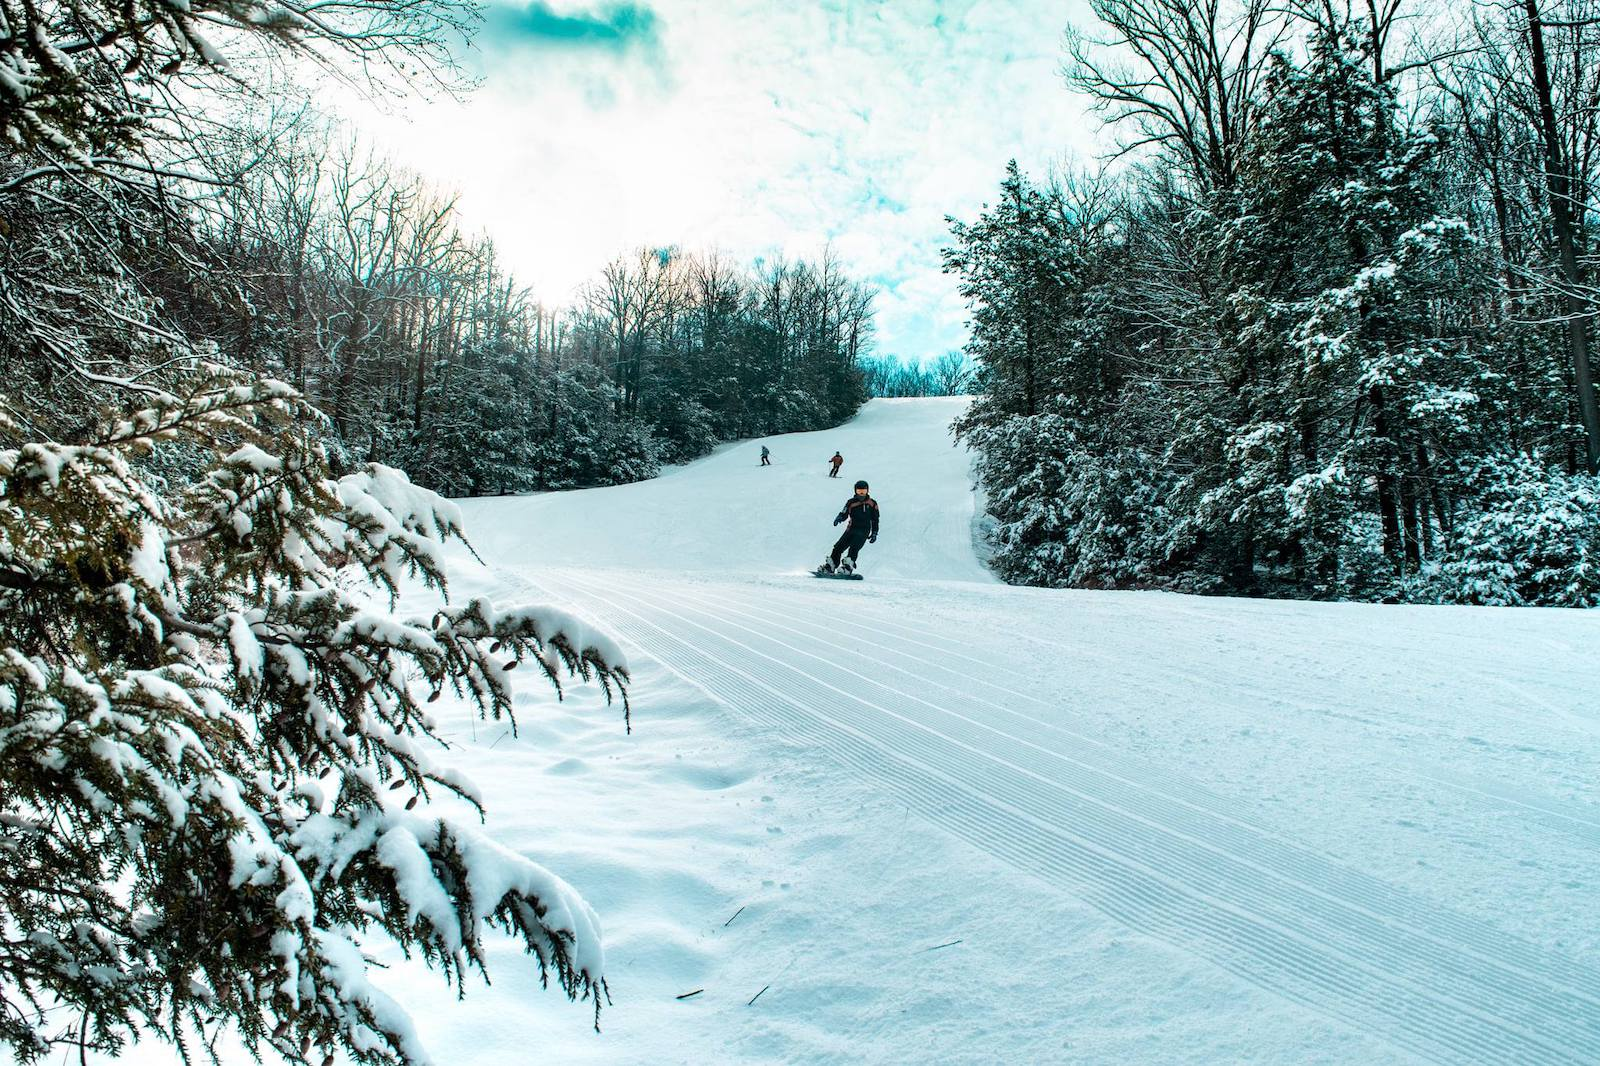 Image of skiers at Montage Mountain Resort, Pennsylvania